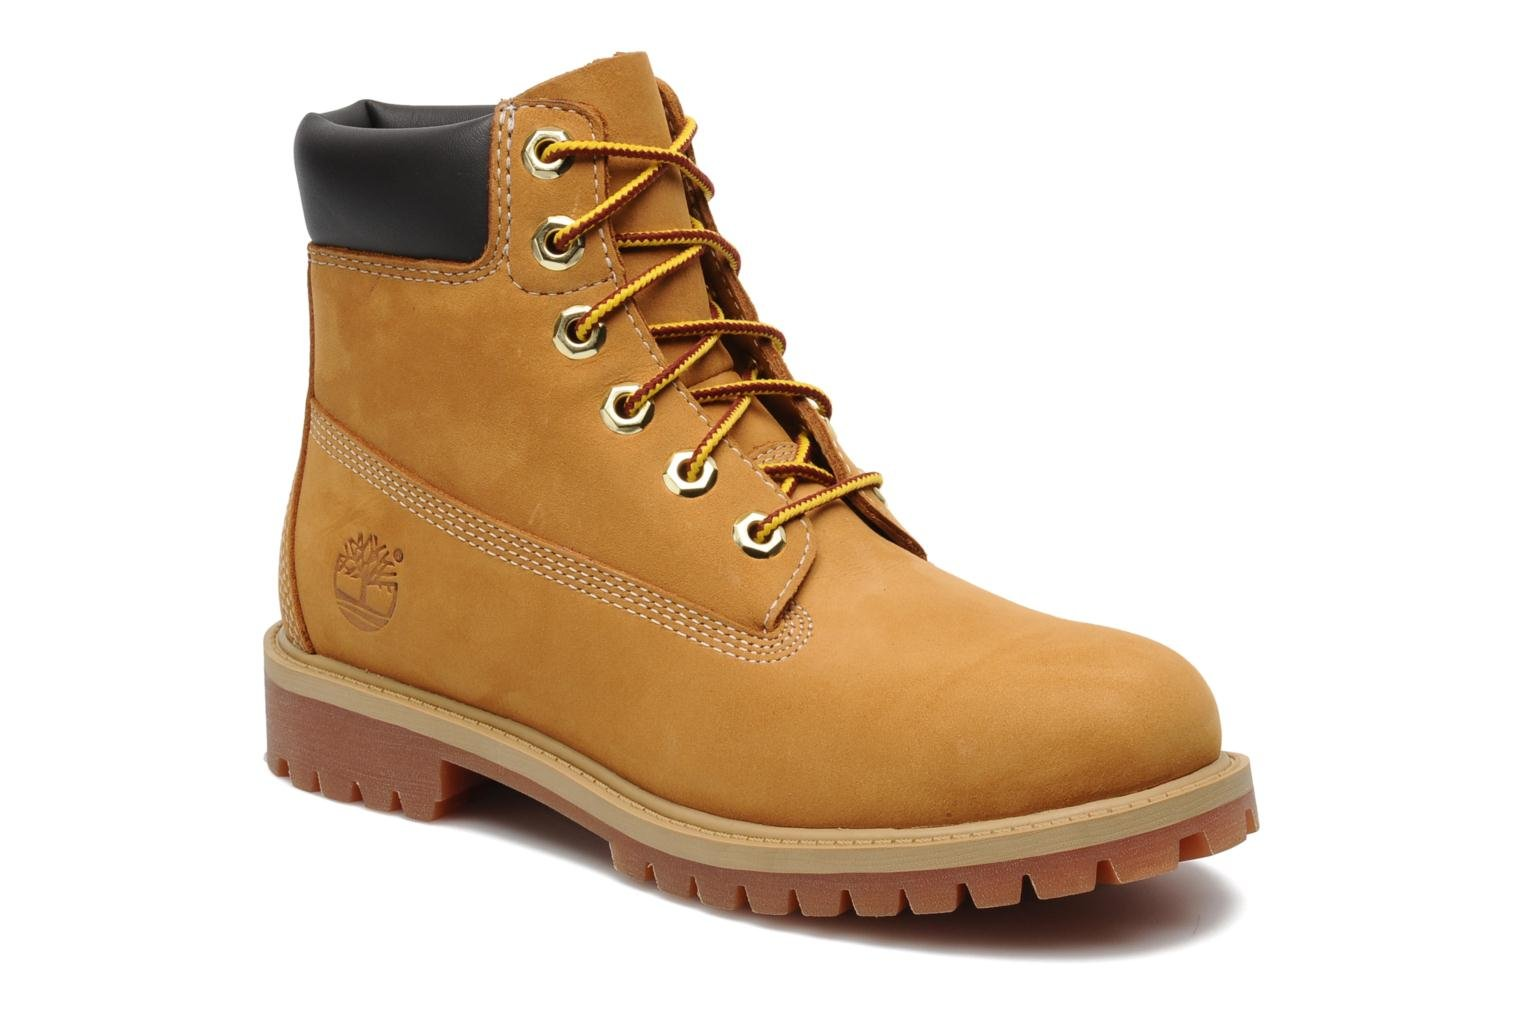 6 In Premium WP Boot by Timberland